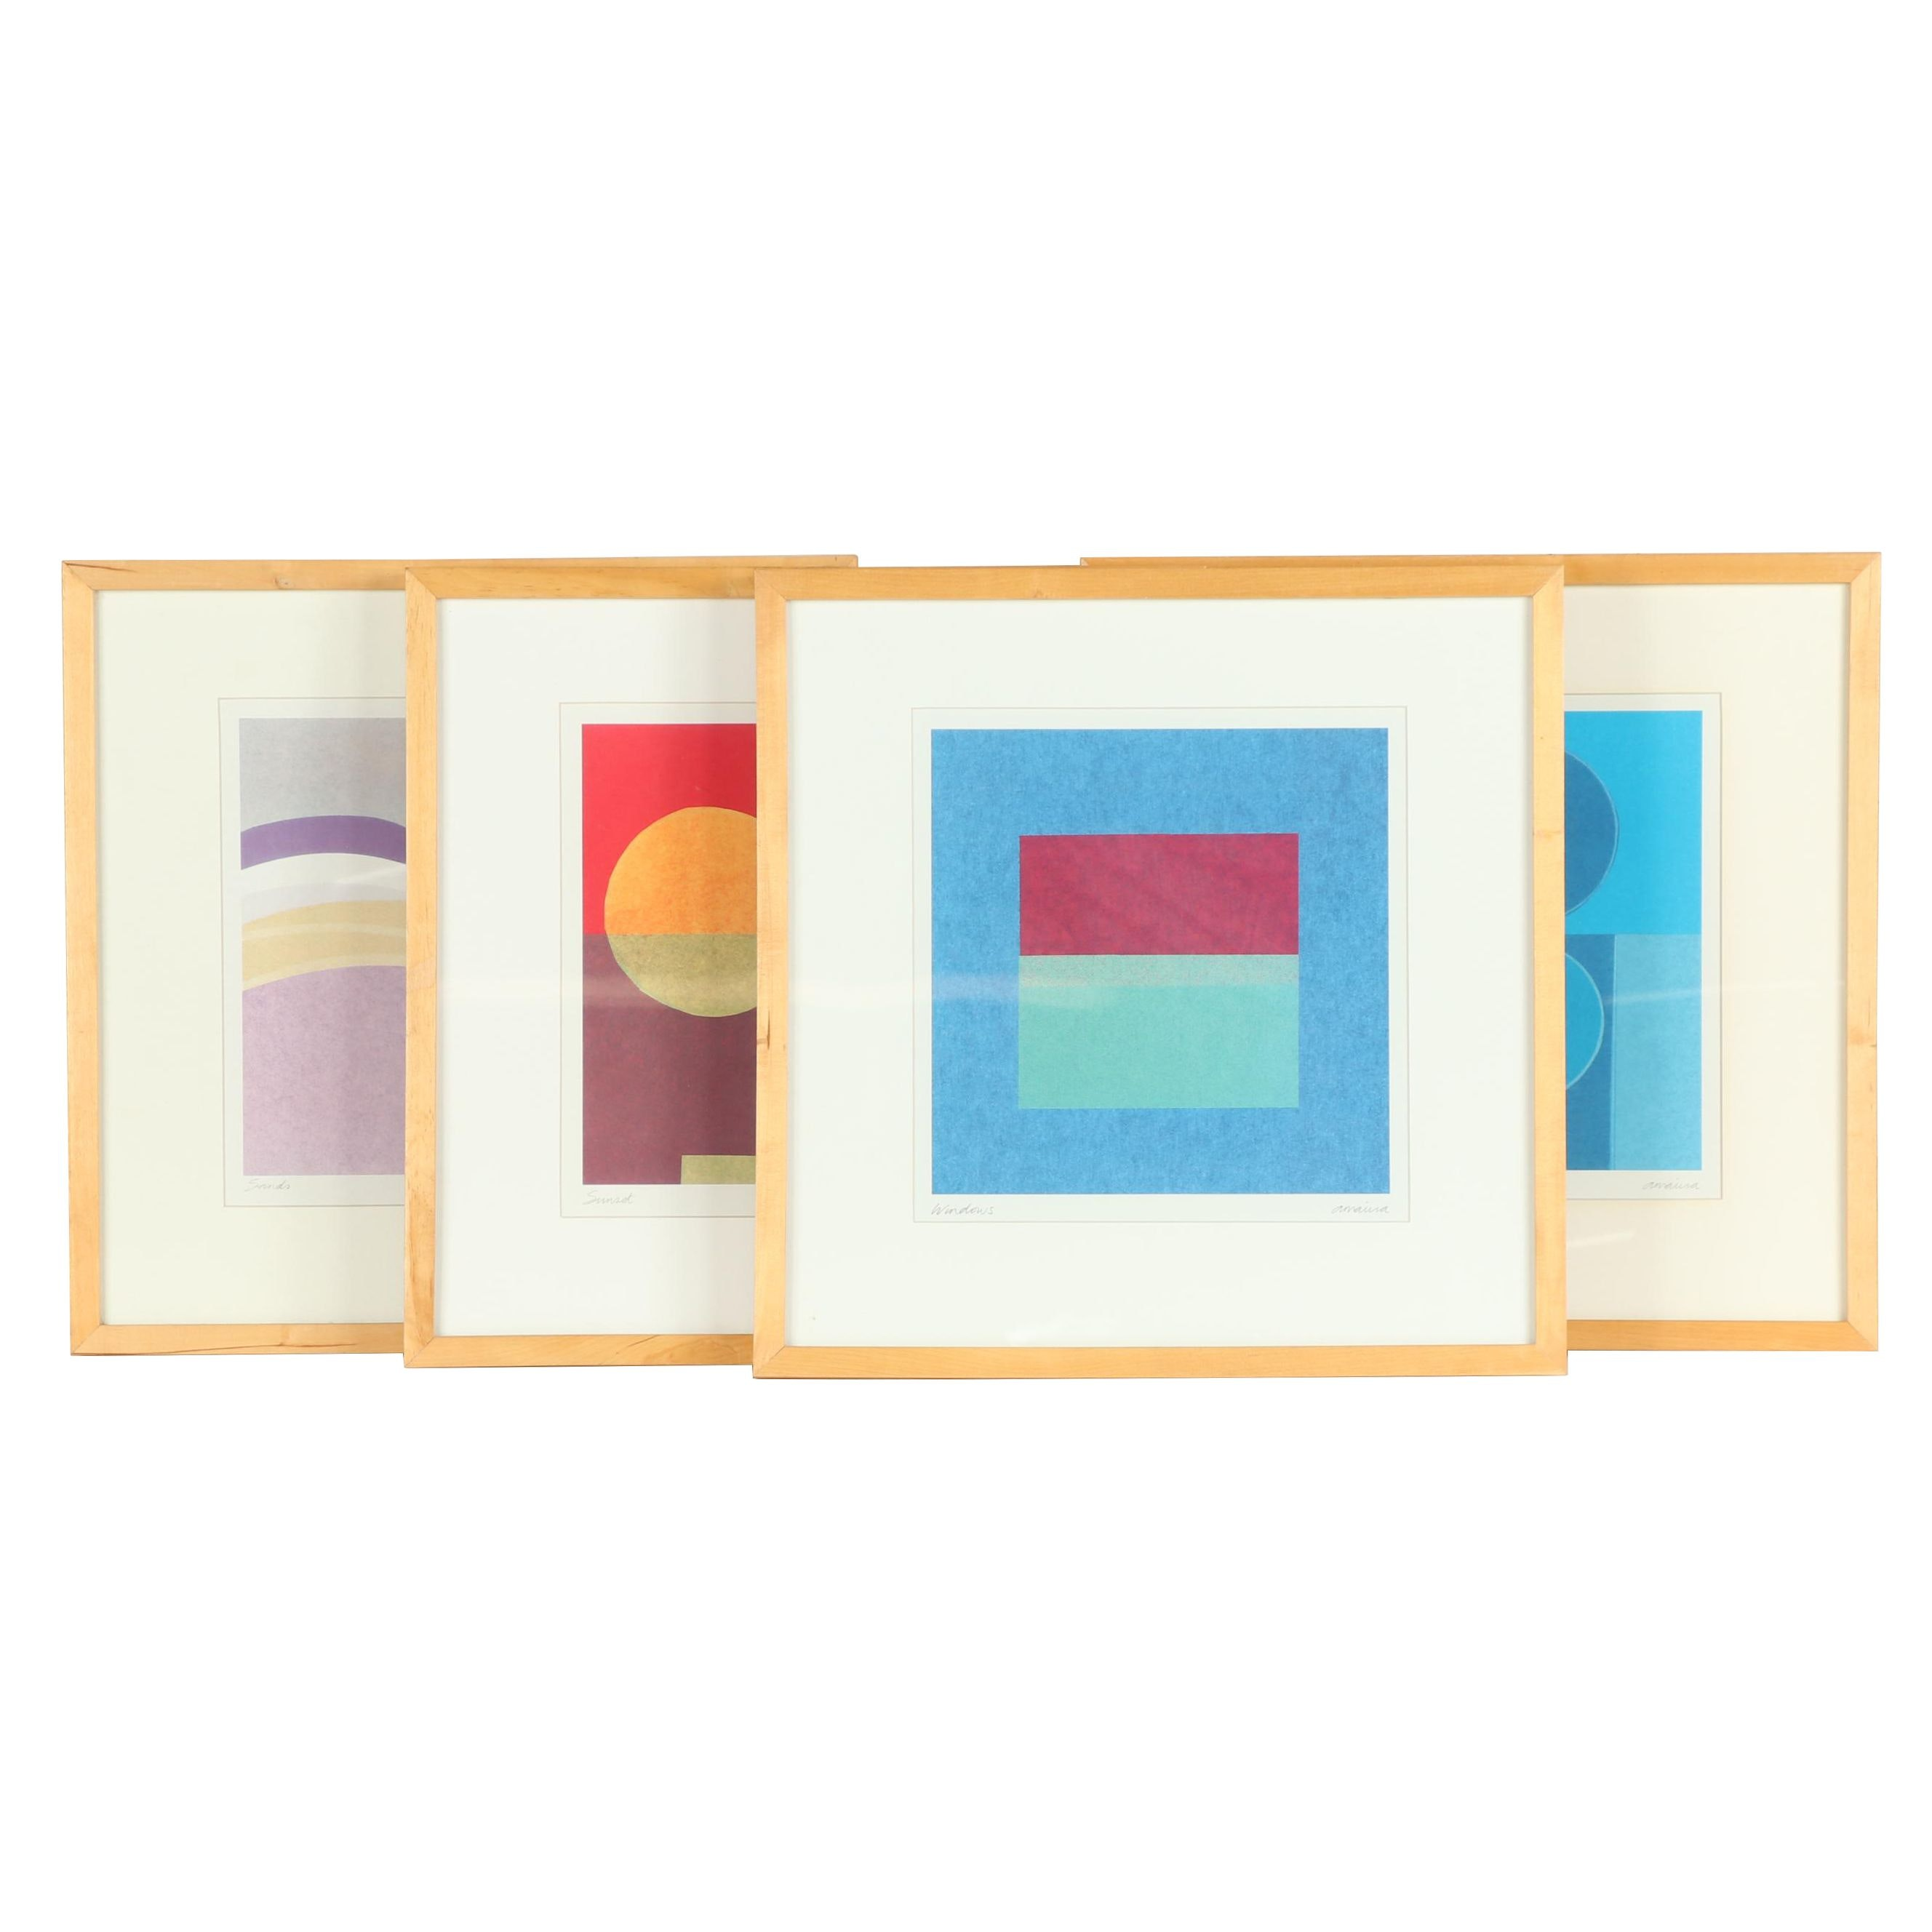 Abstract Geometric Offset Lithographs after Amaina